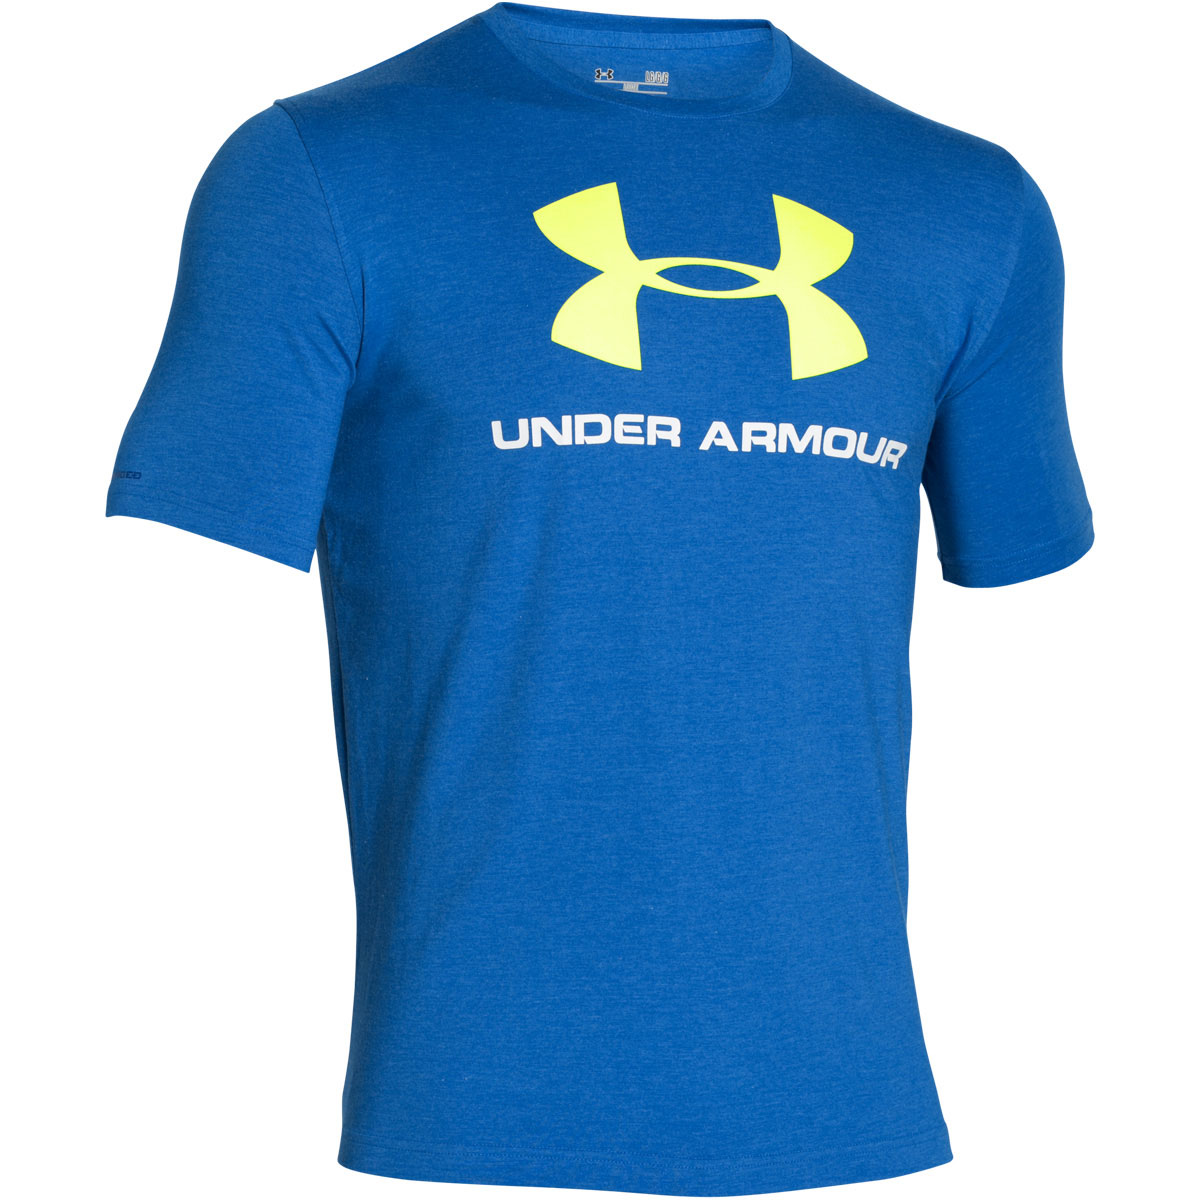 Under armour 2016 mens charged sportstyle logo t shirt for Mens under armour shirts